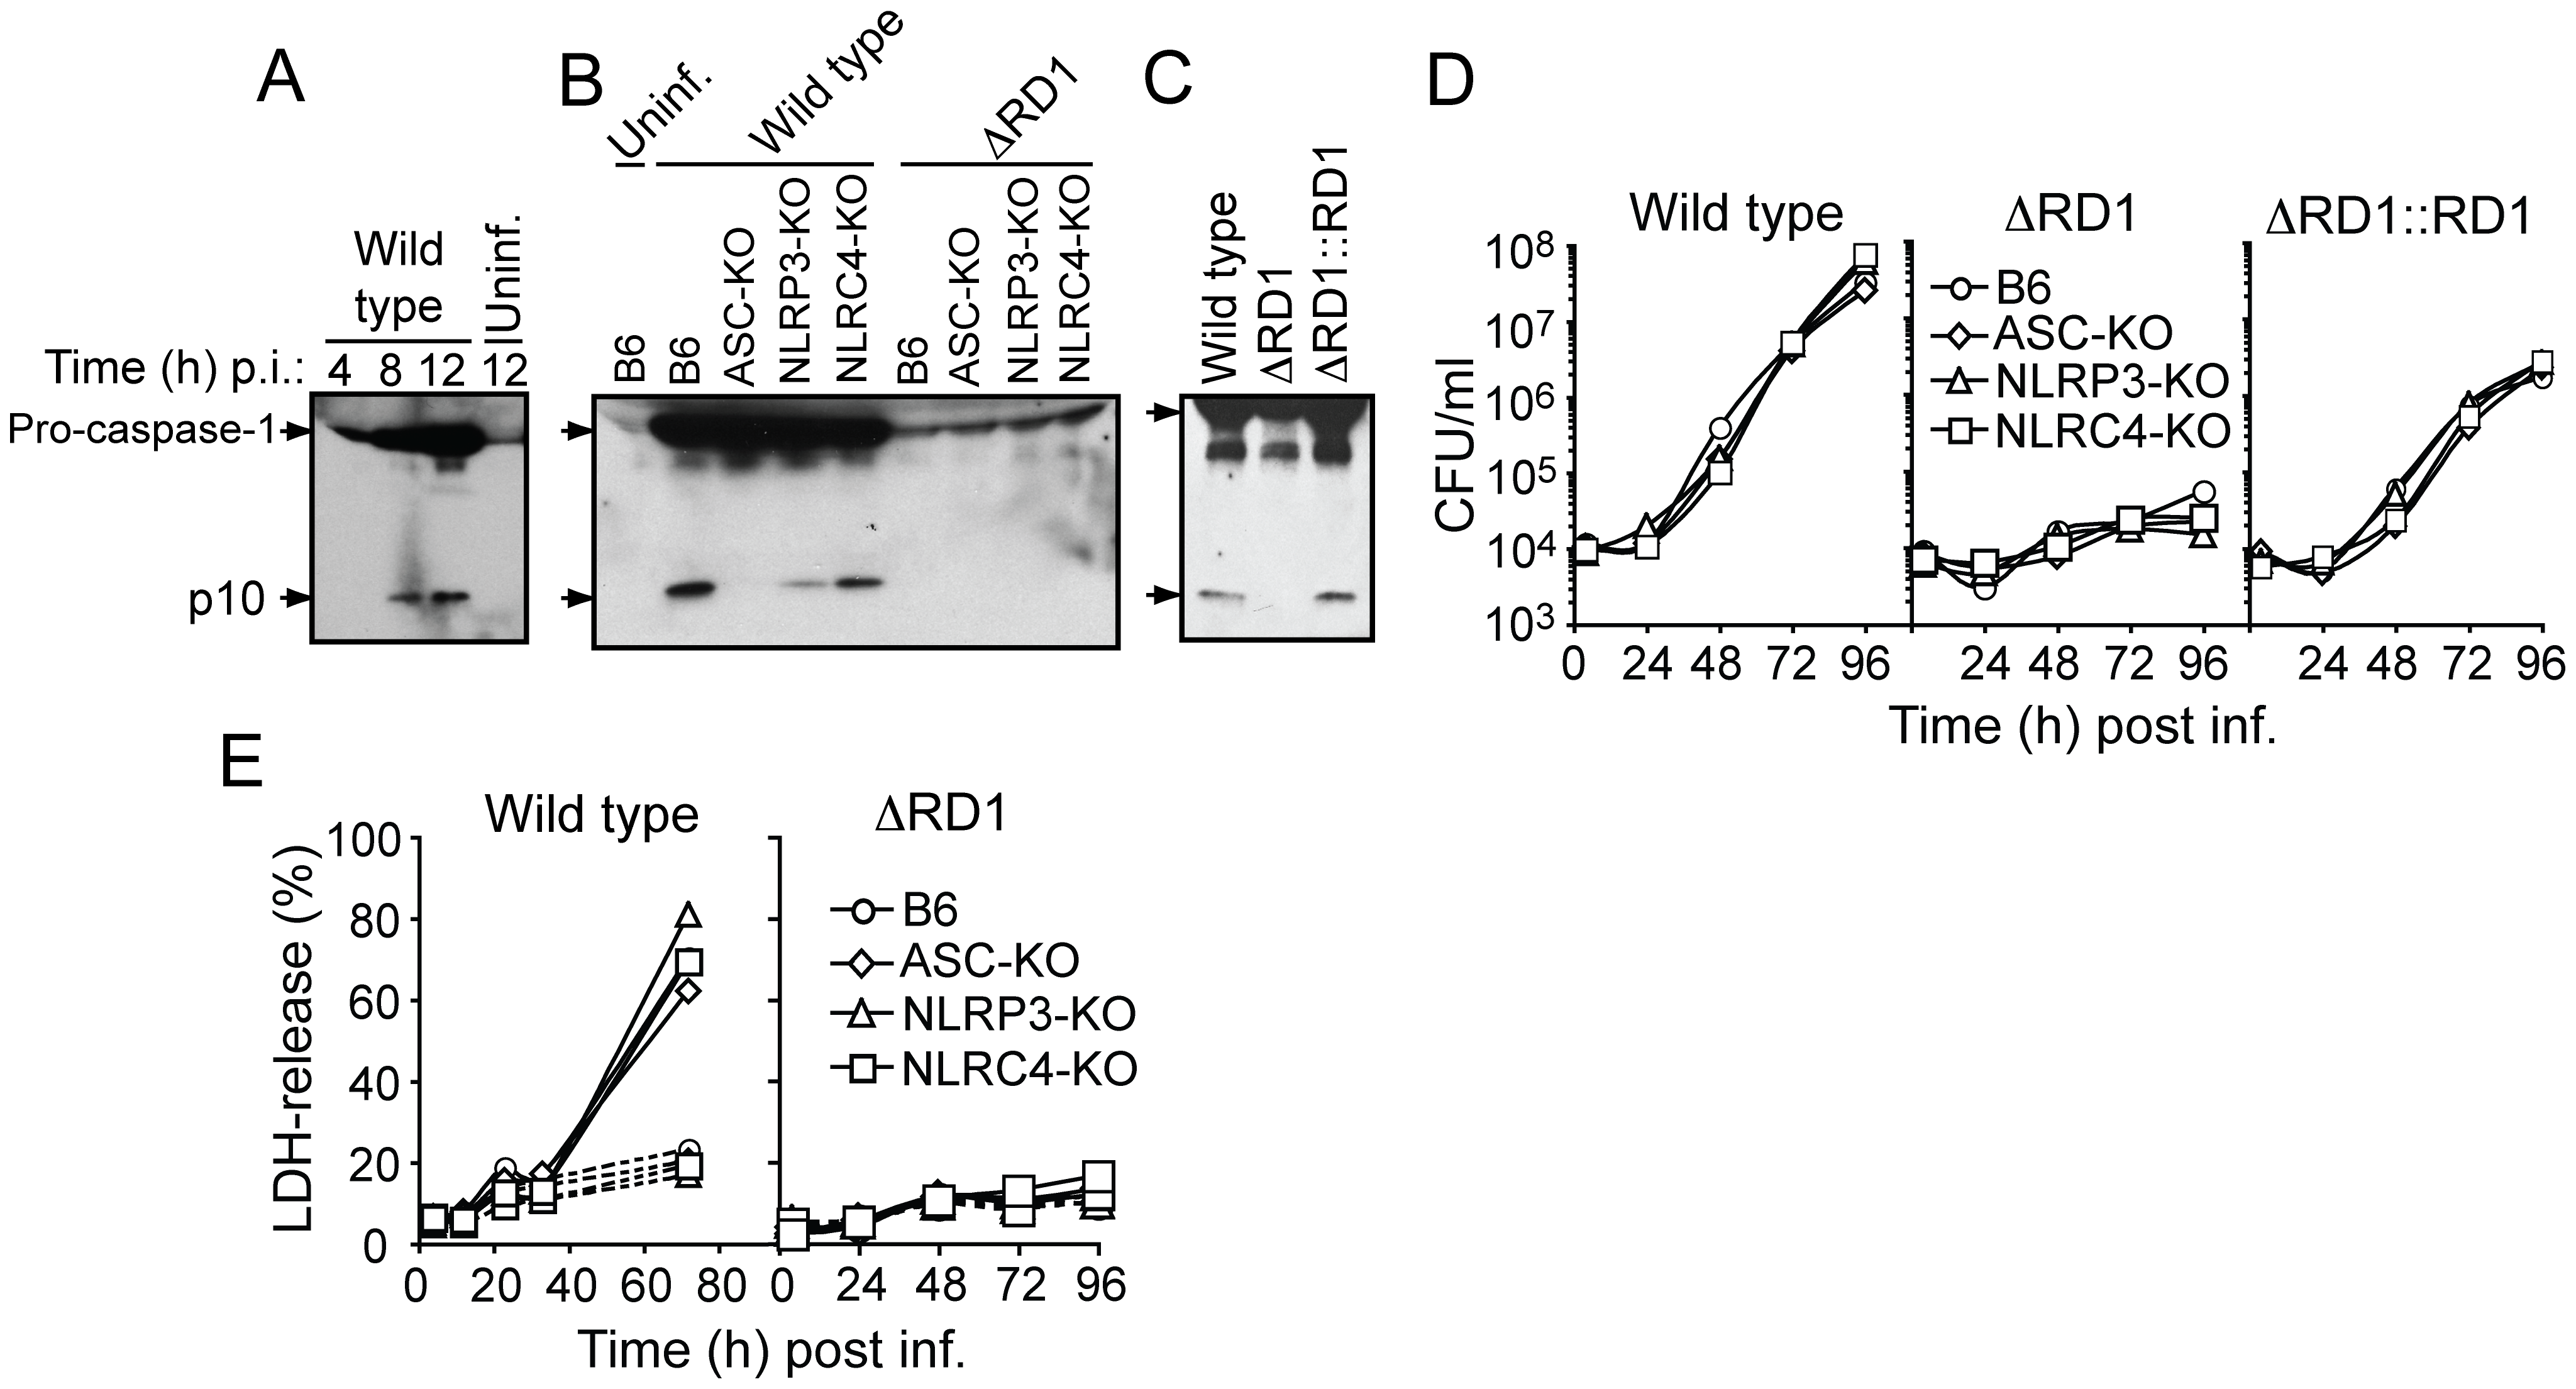 Esx-1 is required for activation of the NLRP3/ASC-inflammasome in bone marrow-derived macrophages.